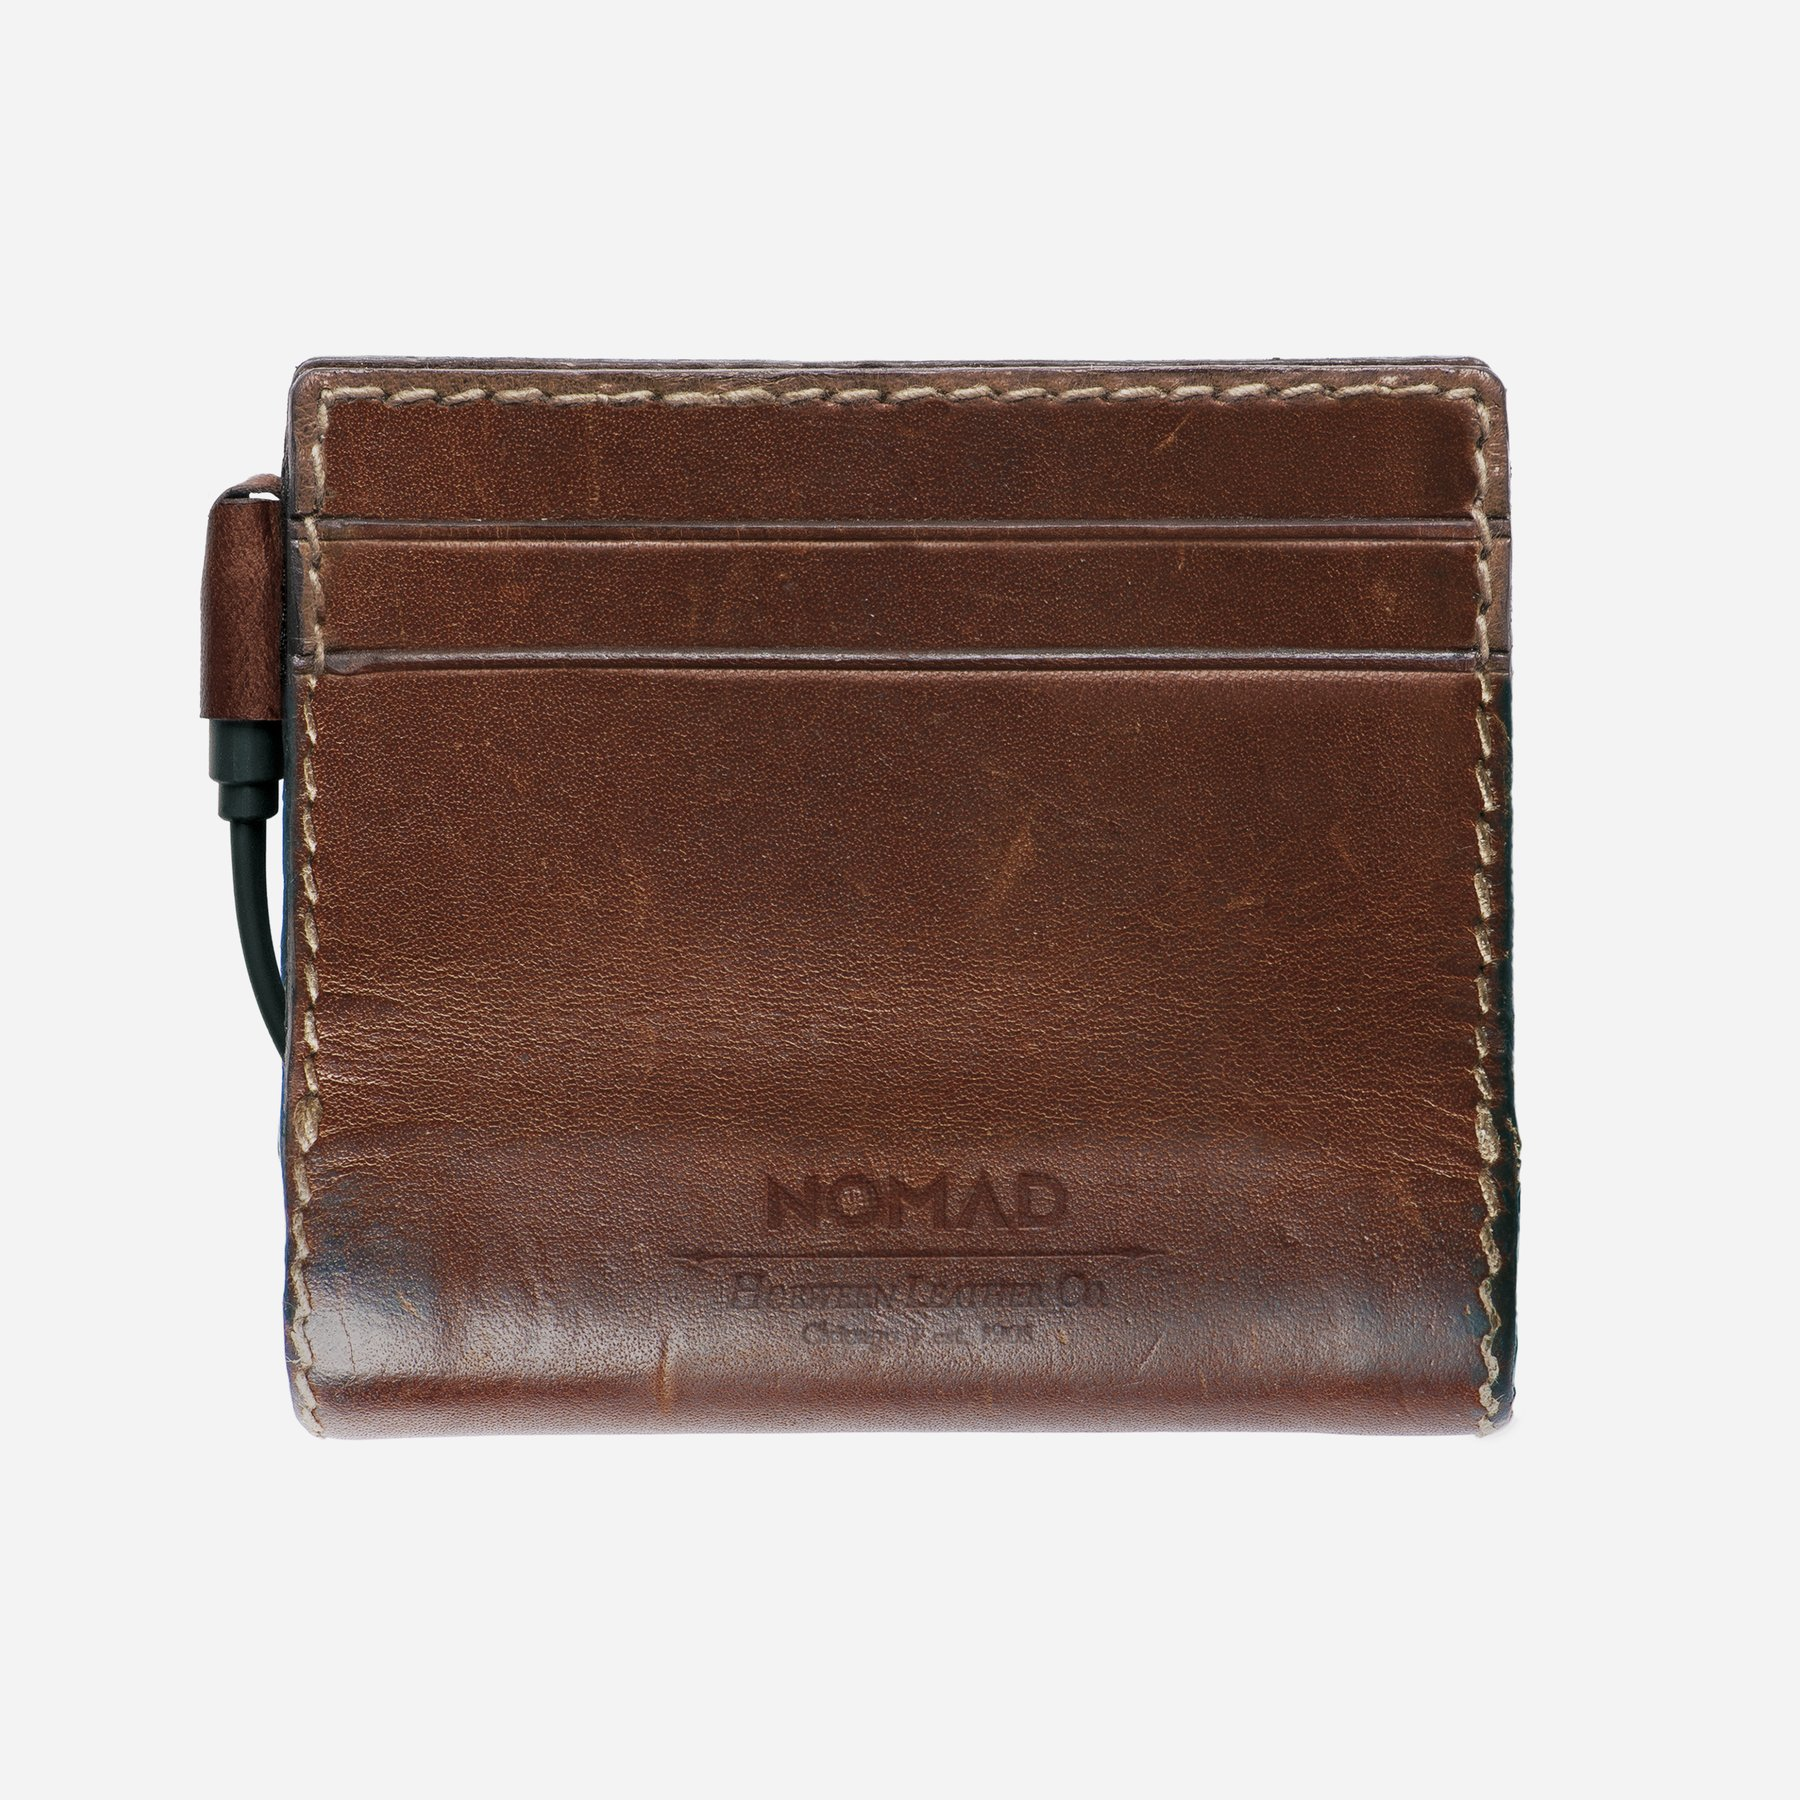 GET 10%OFF NOW! - As a brand ambassador for Nomad we've got access to an exclusive discount code. Click here to get access.